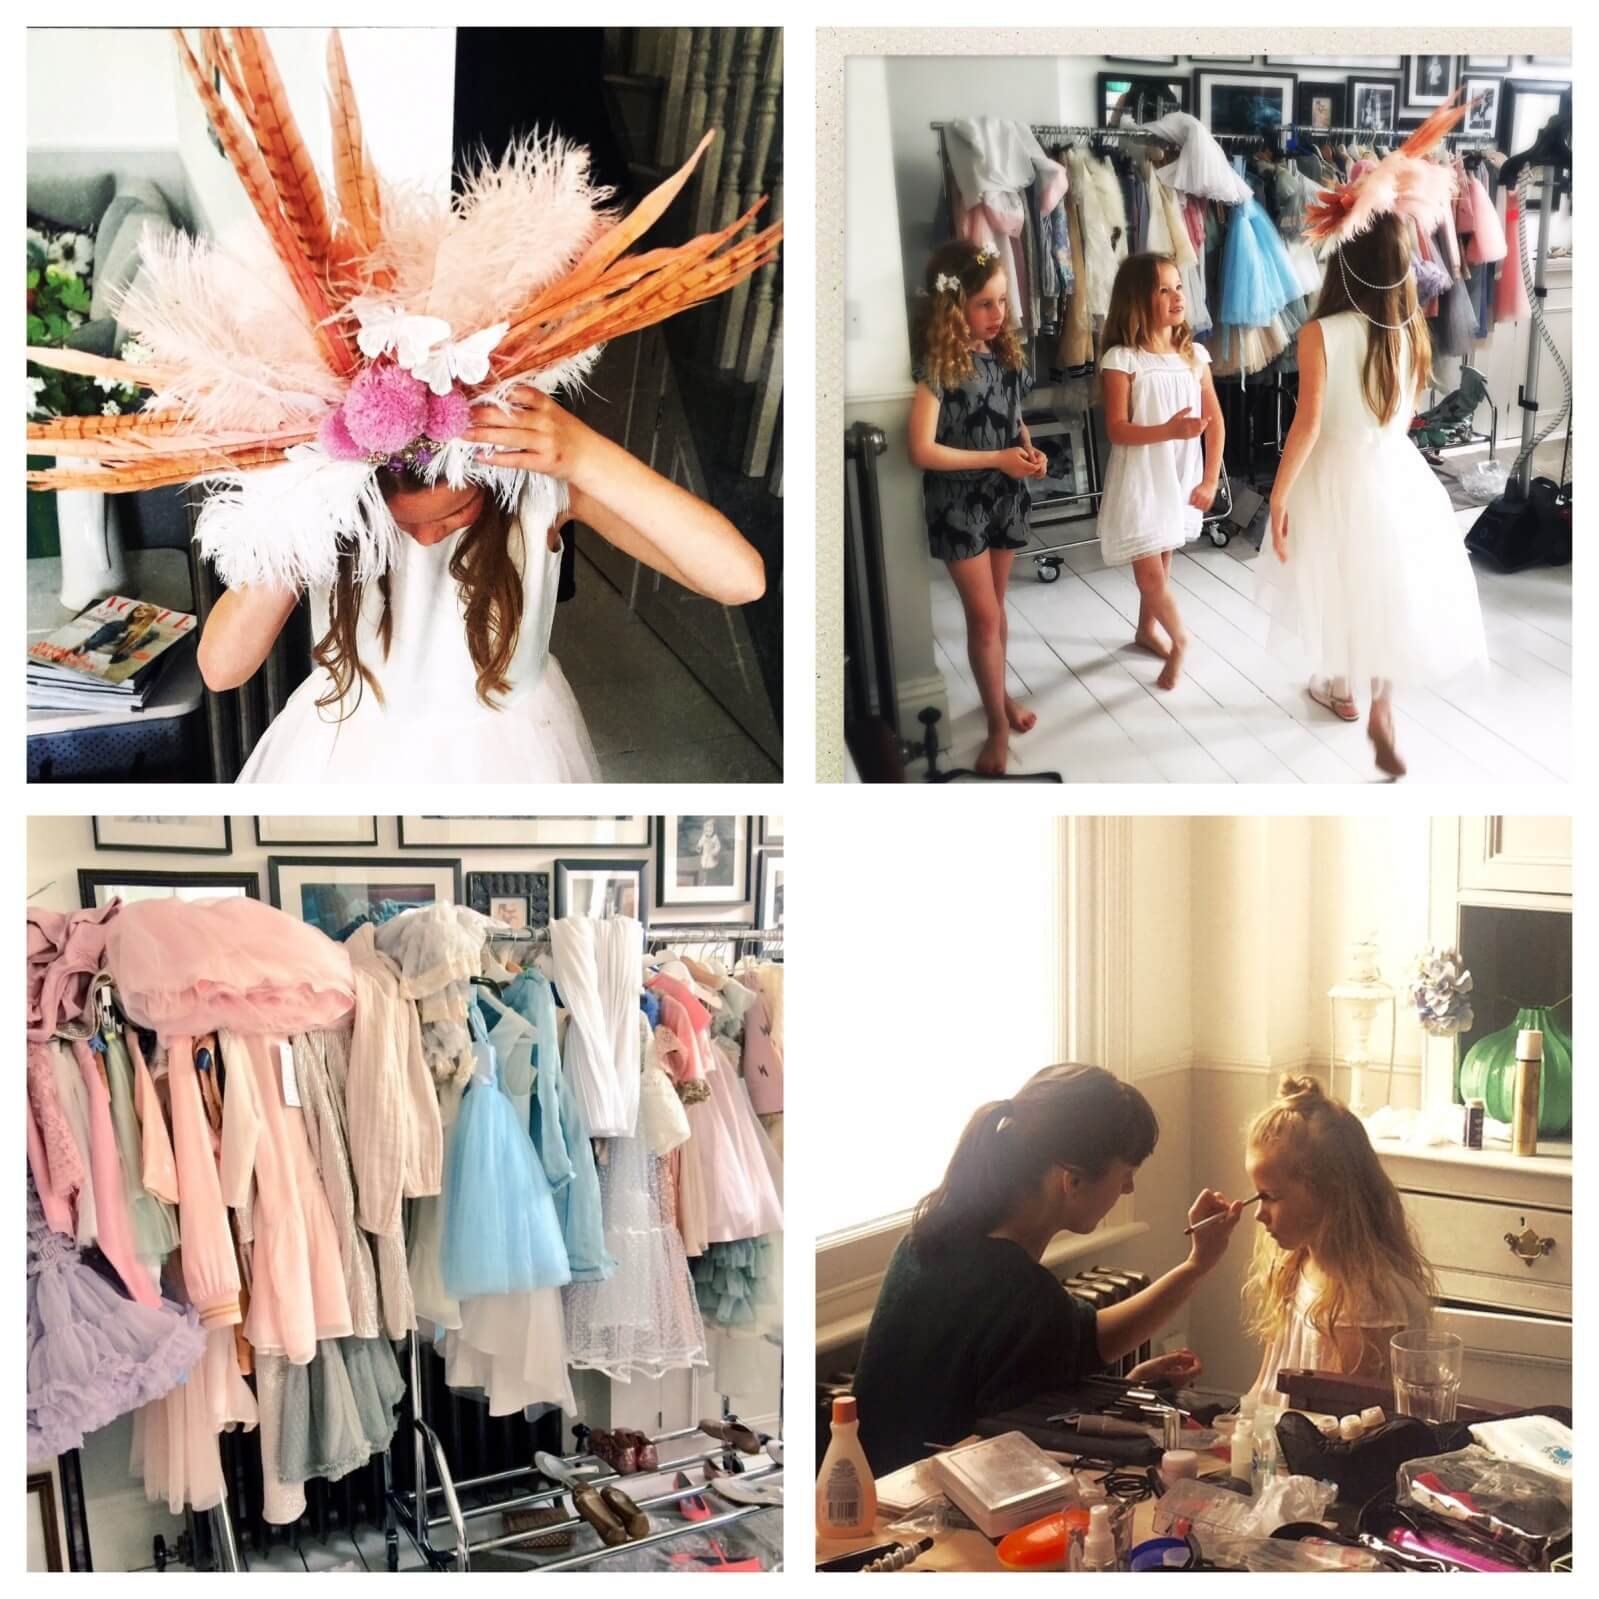 Behind the Scenes of our beautiful shoot. Top Left, Freya adjusts beautiful Astrobohemia headdress. Top Right, The girls relax in between shots in the dressing area. Bottom left, Rails and rails of beautiful clothes. Bottom right, Make-Up artist Rose perfects the ballet look on Poppy.